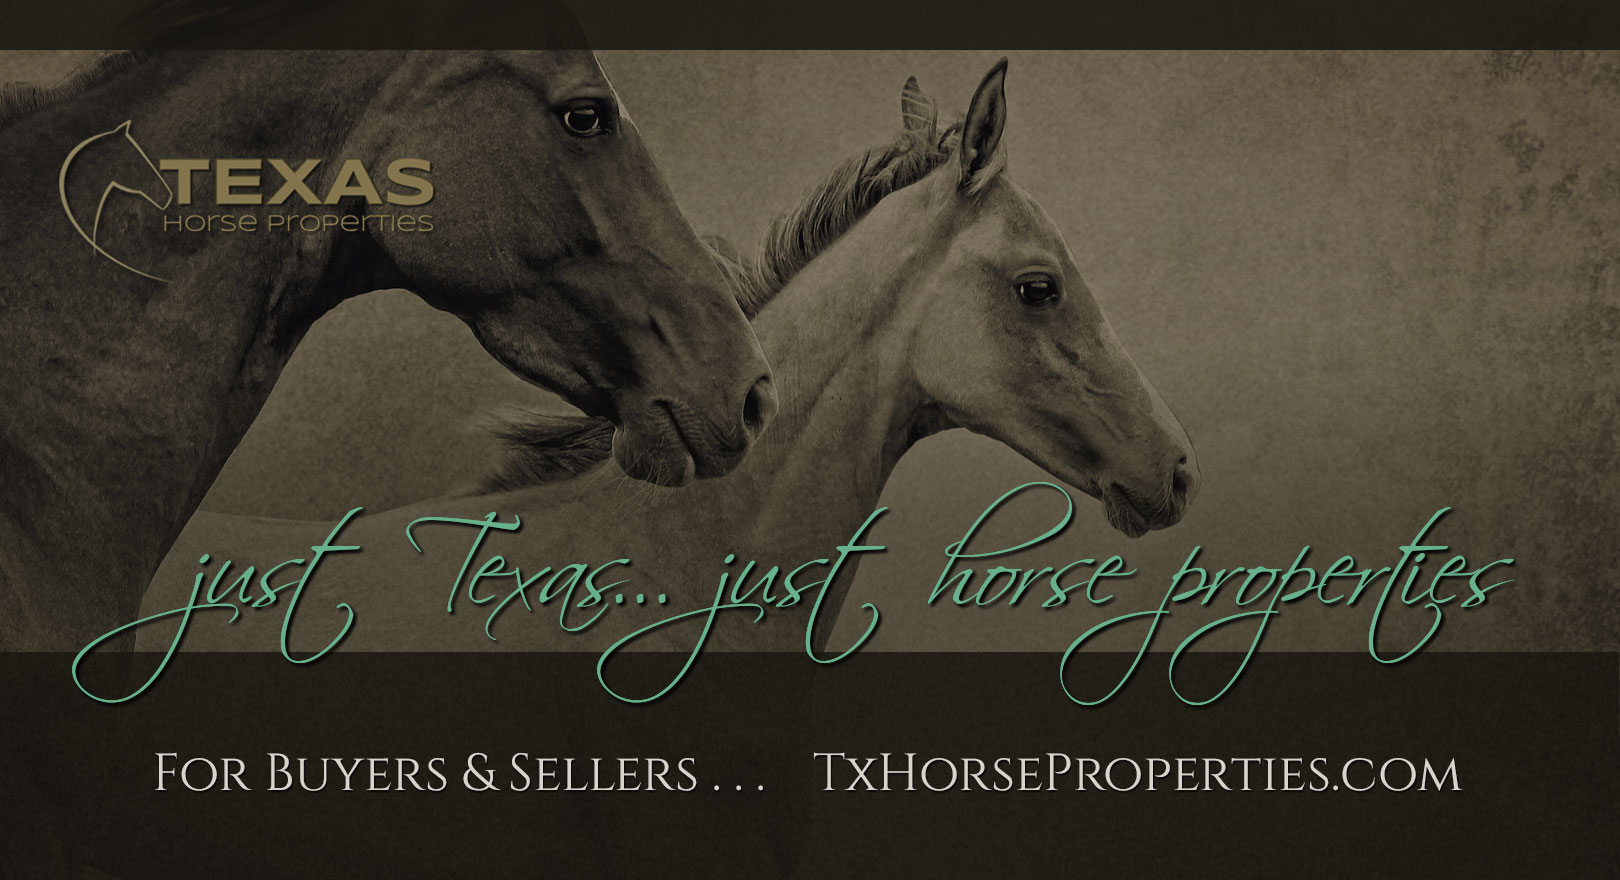 Texas Horse Properties